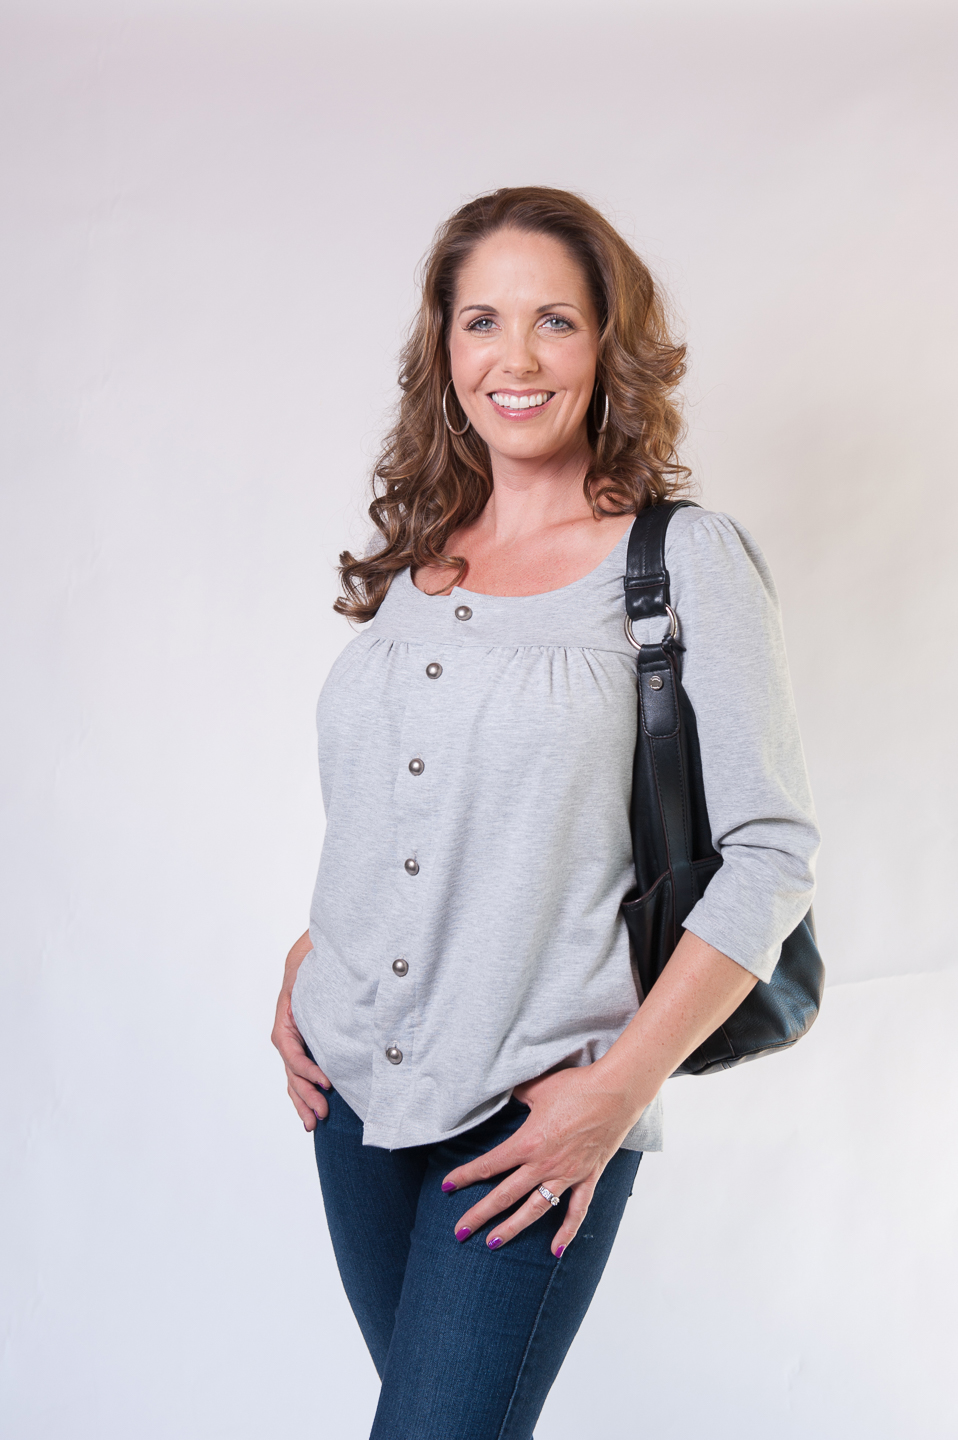 Dianne - Long Sleeve Button-Up Top in GREY $69.95